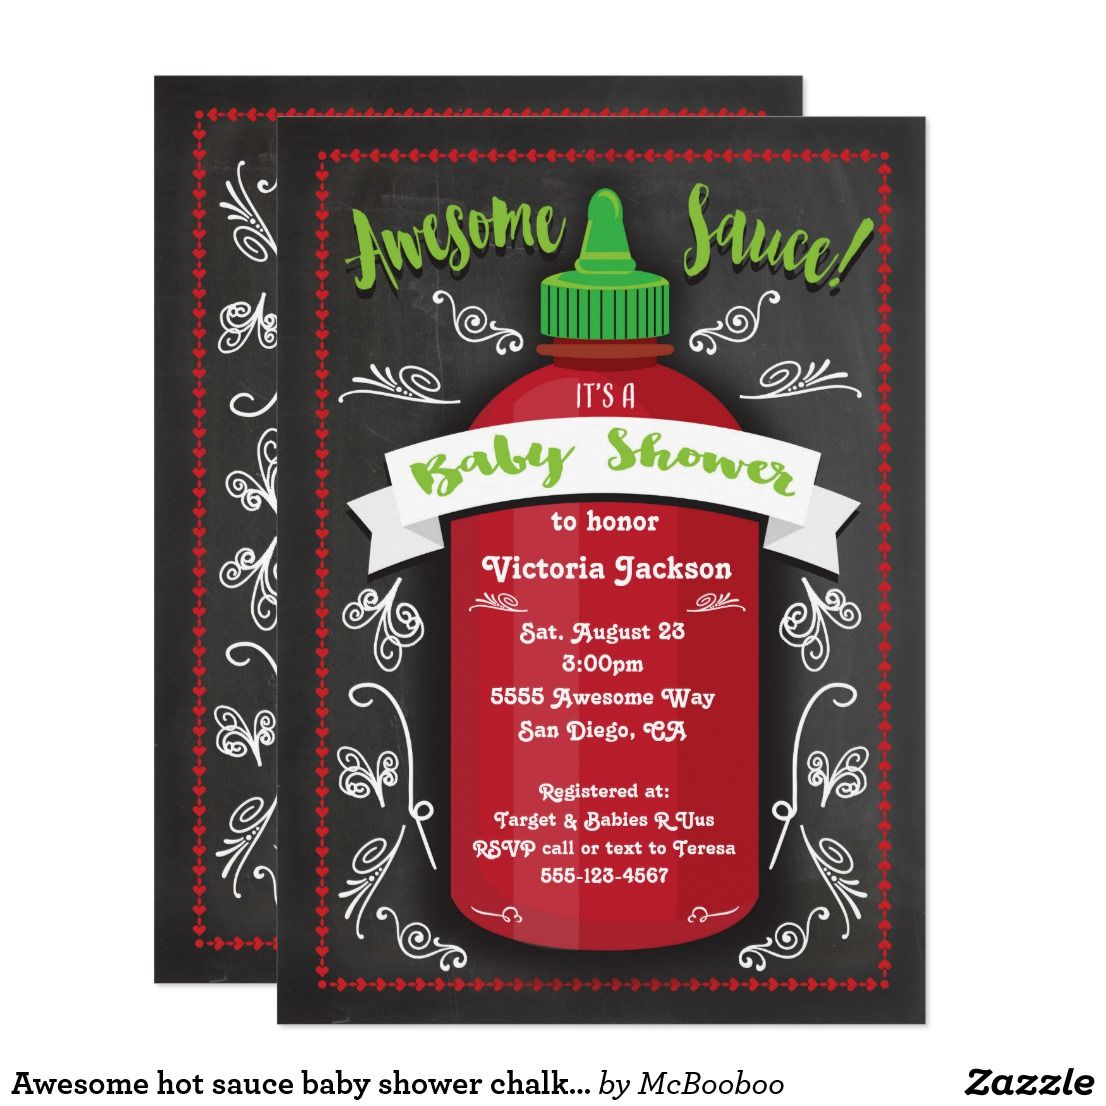 Awesome hot sauce baby shower chalkboard invites | Babies and Baby ...